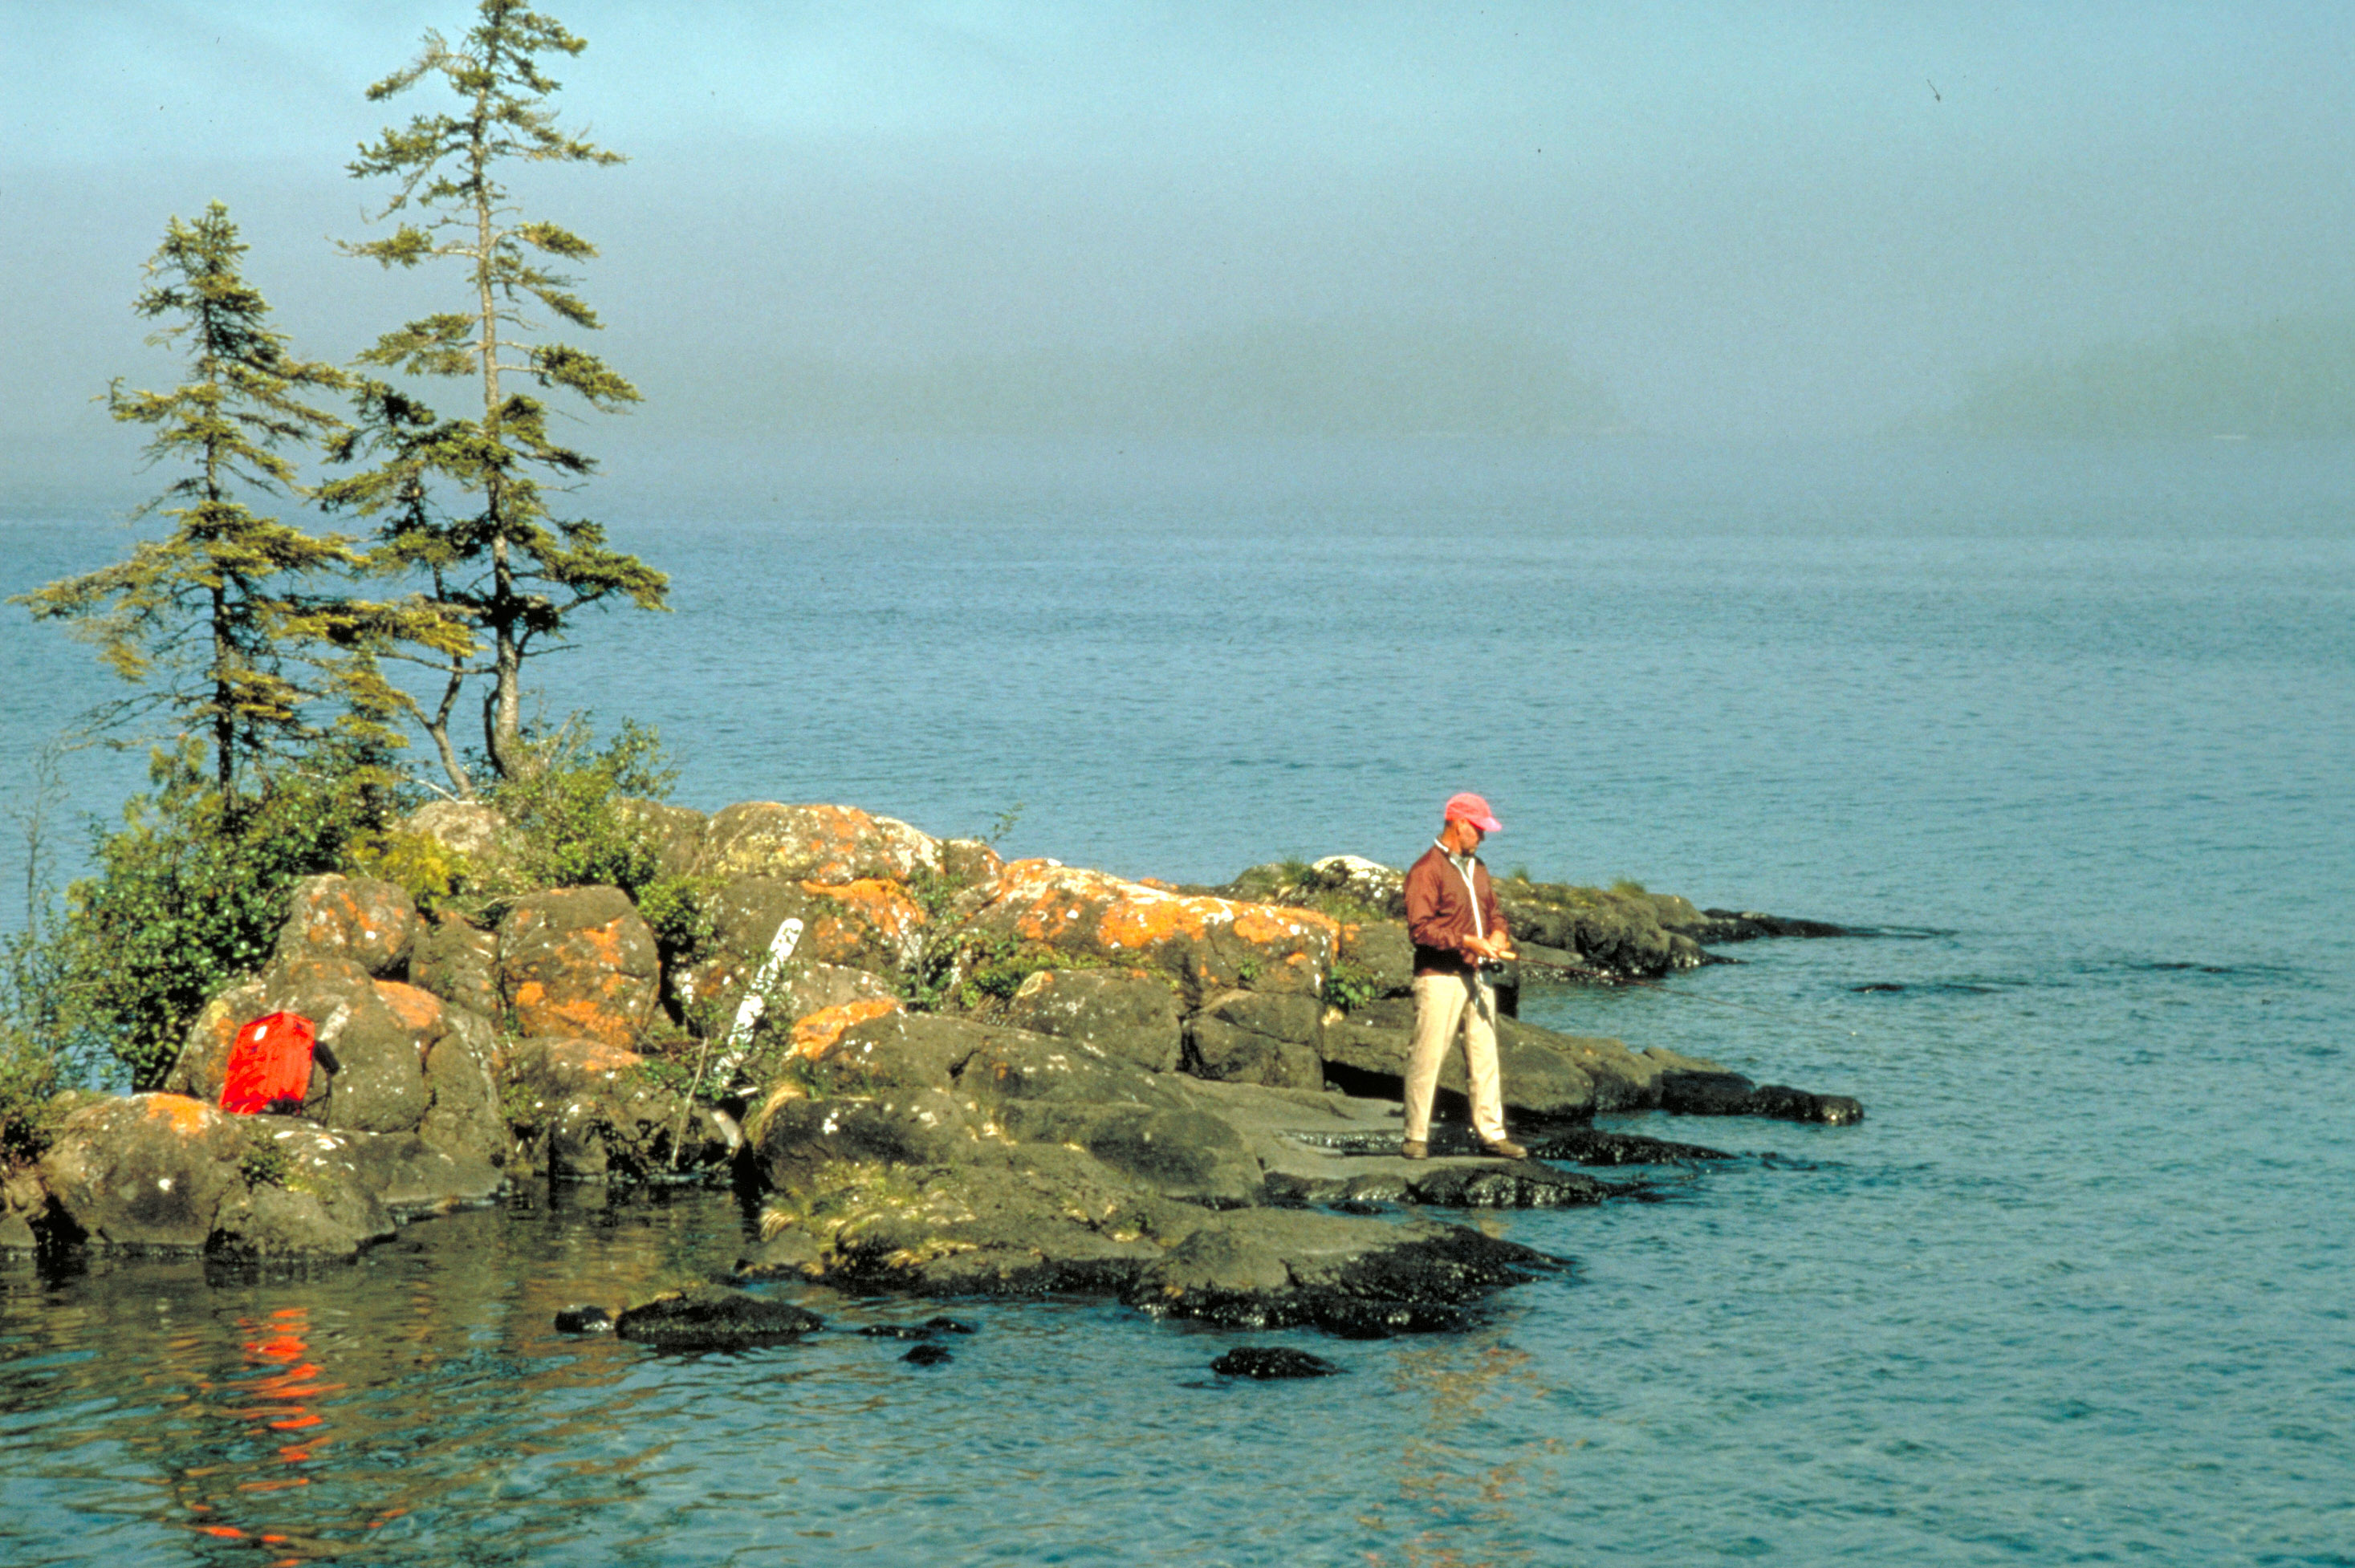 Great lakes national program office image collection for Lake superior fishing